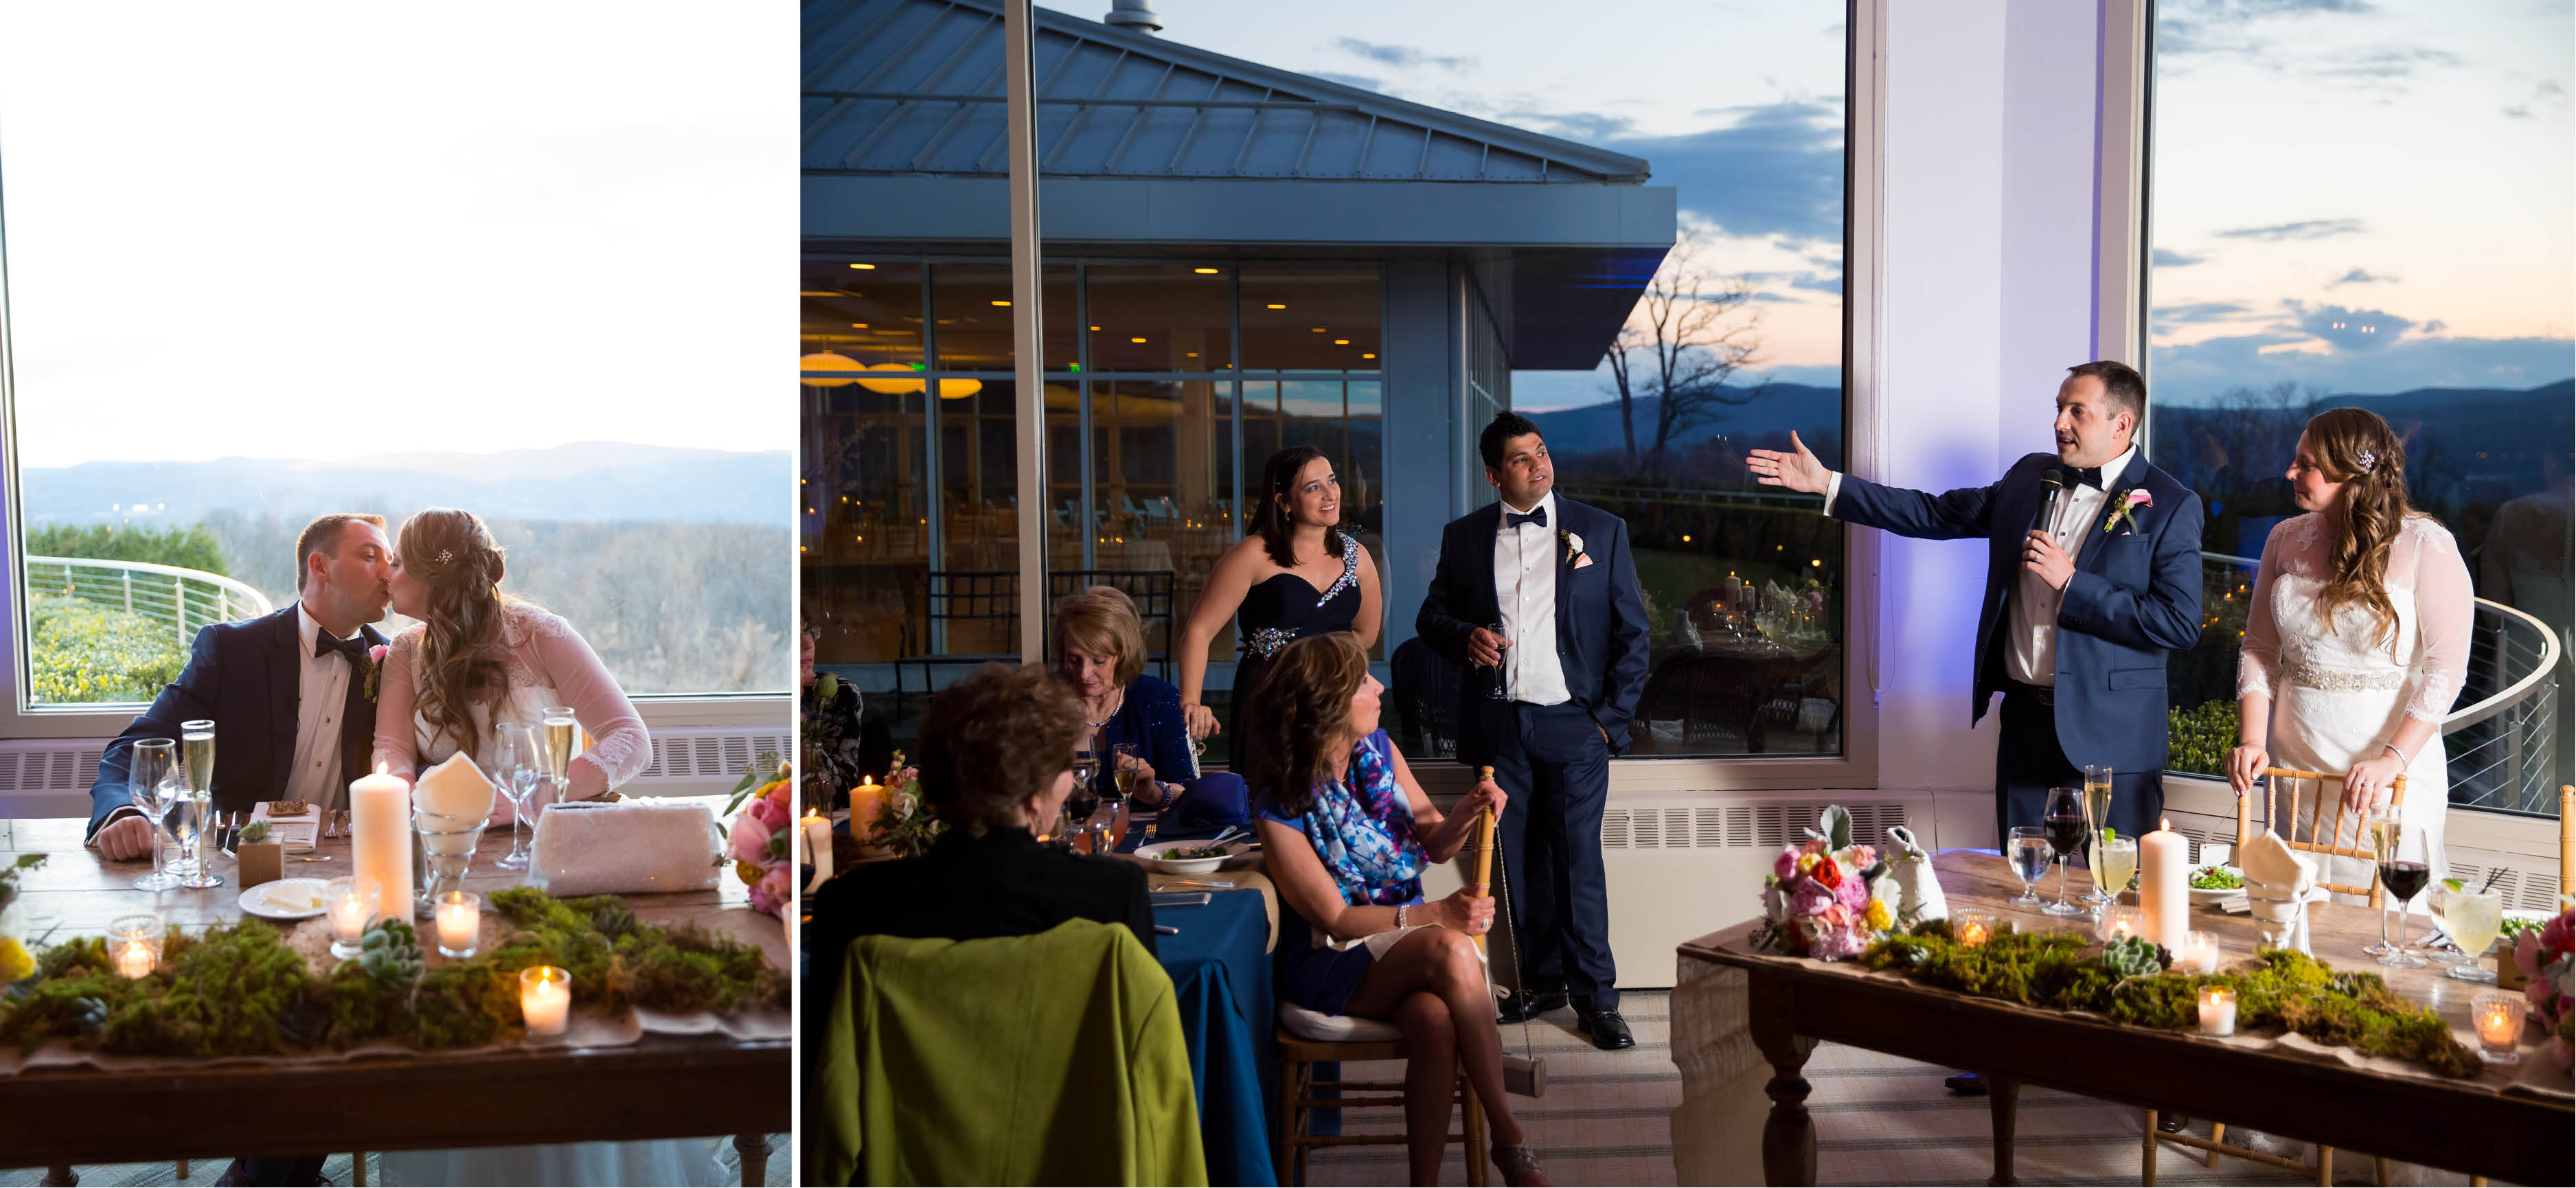 Stunning outdoor wedding photos at the garrison new york for Outdoor wedding new york